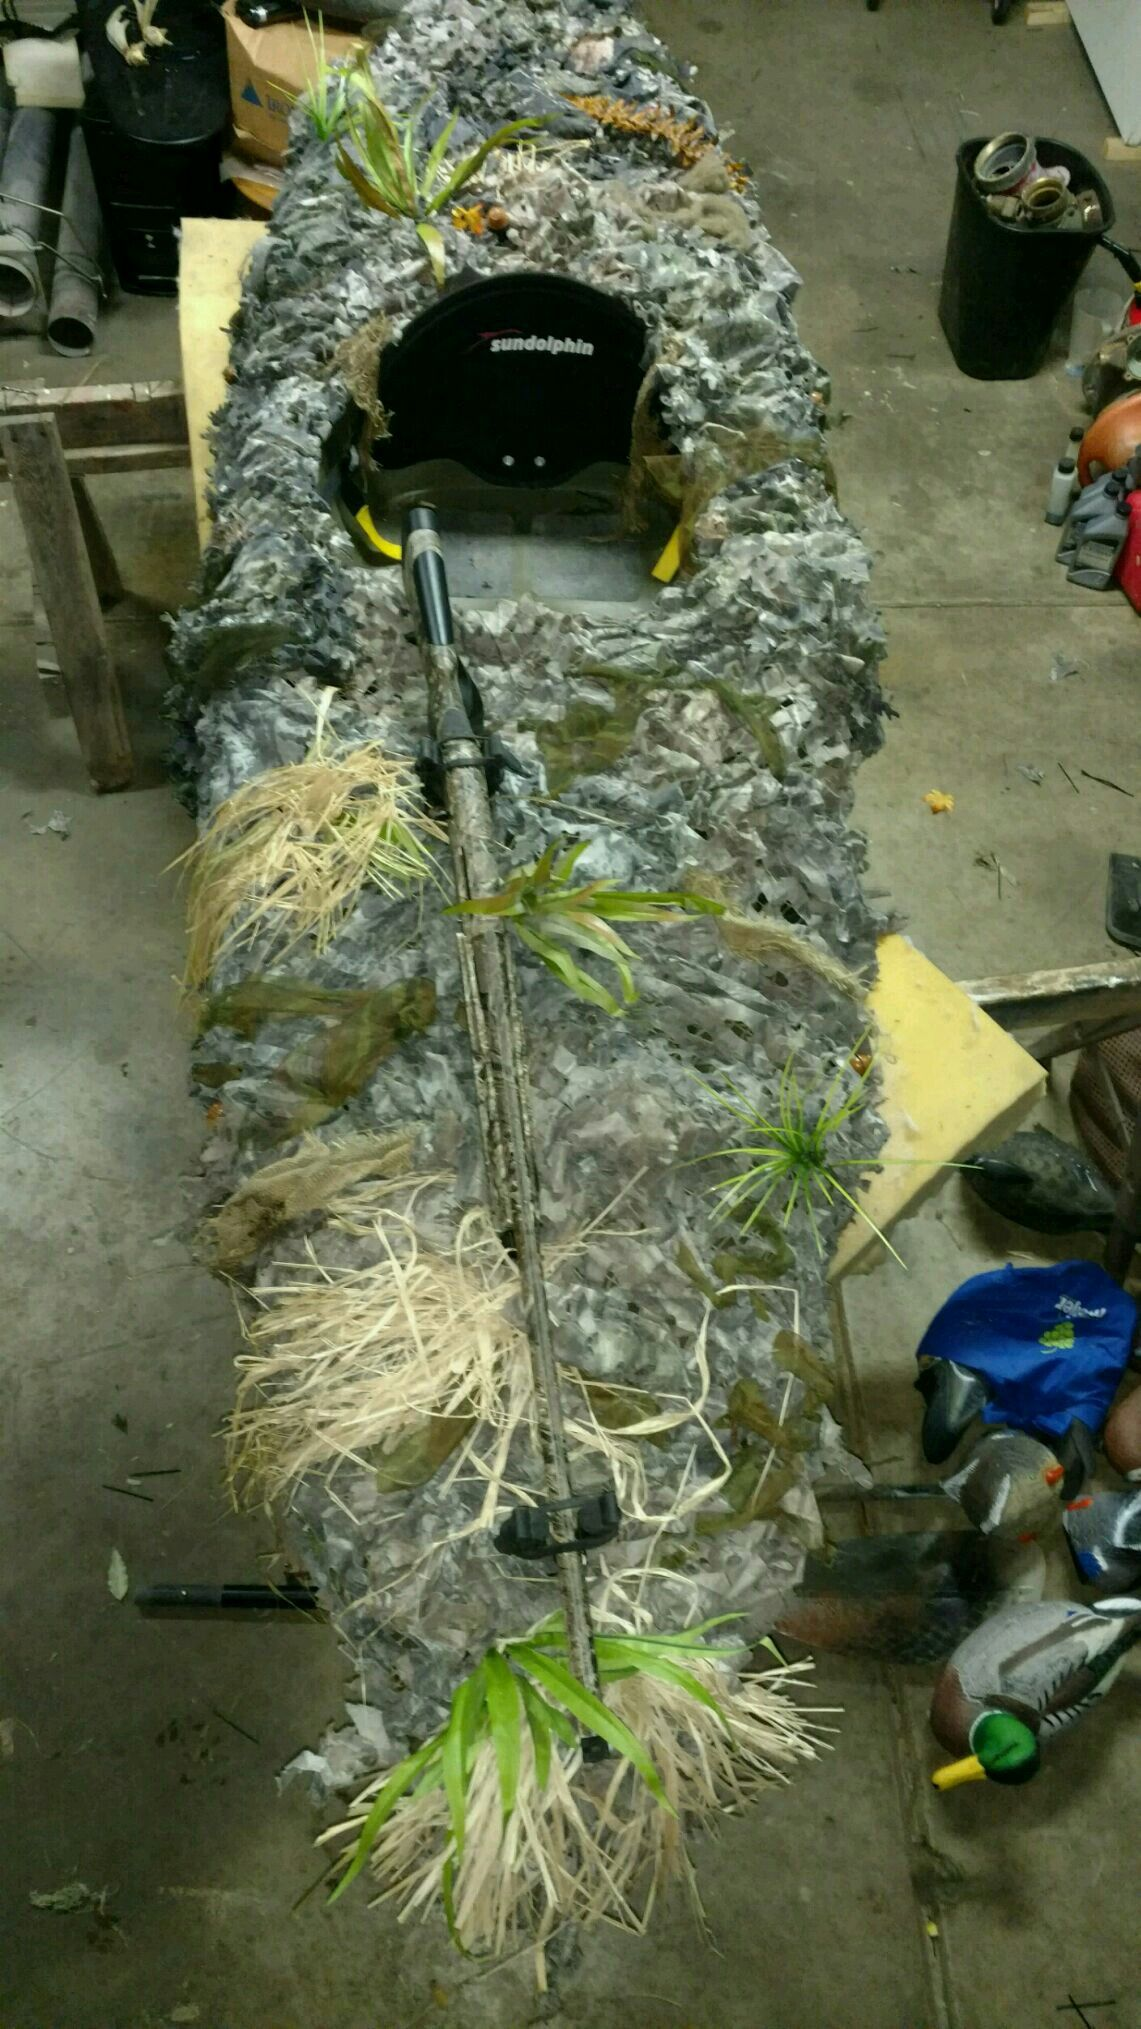 a more into if boats can the like gnatoutdoors hunting pontoon consumed duck bigger lot expensive rig by sink bug blind waterfowling seem page canoe become money you numerous and to get of tag blinds